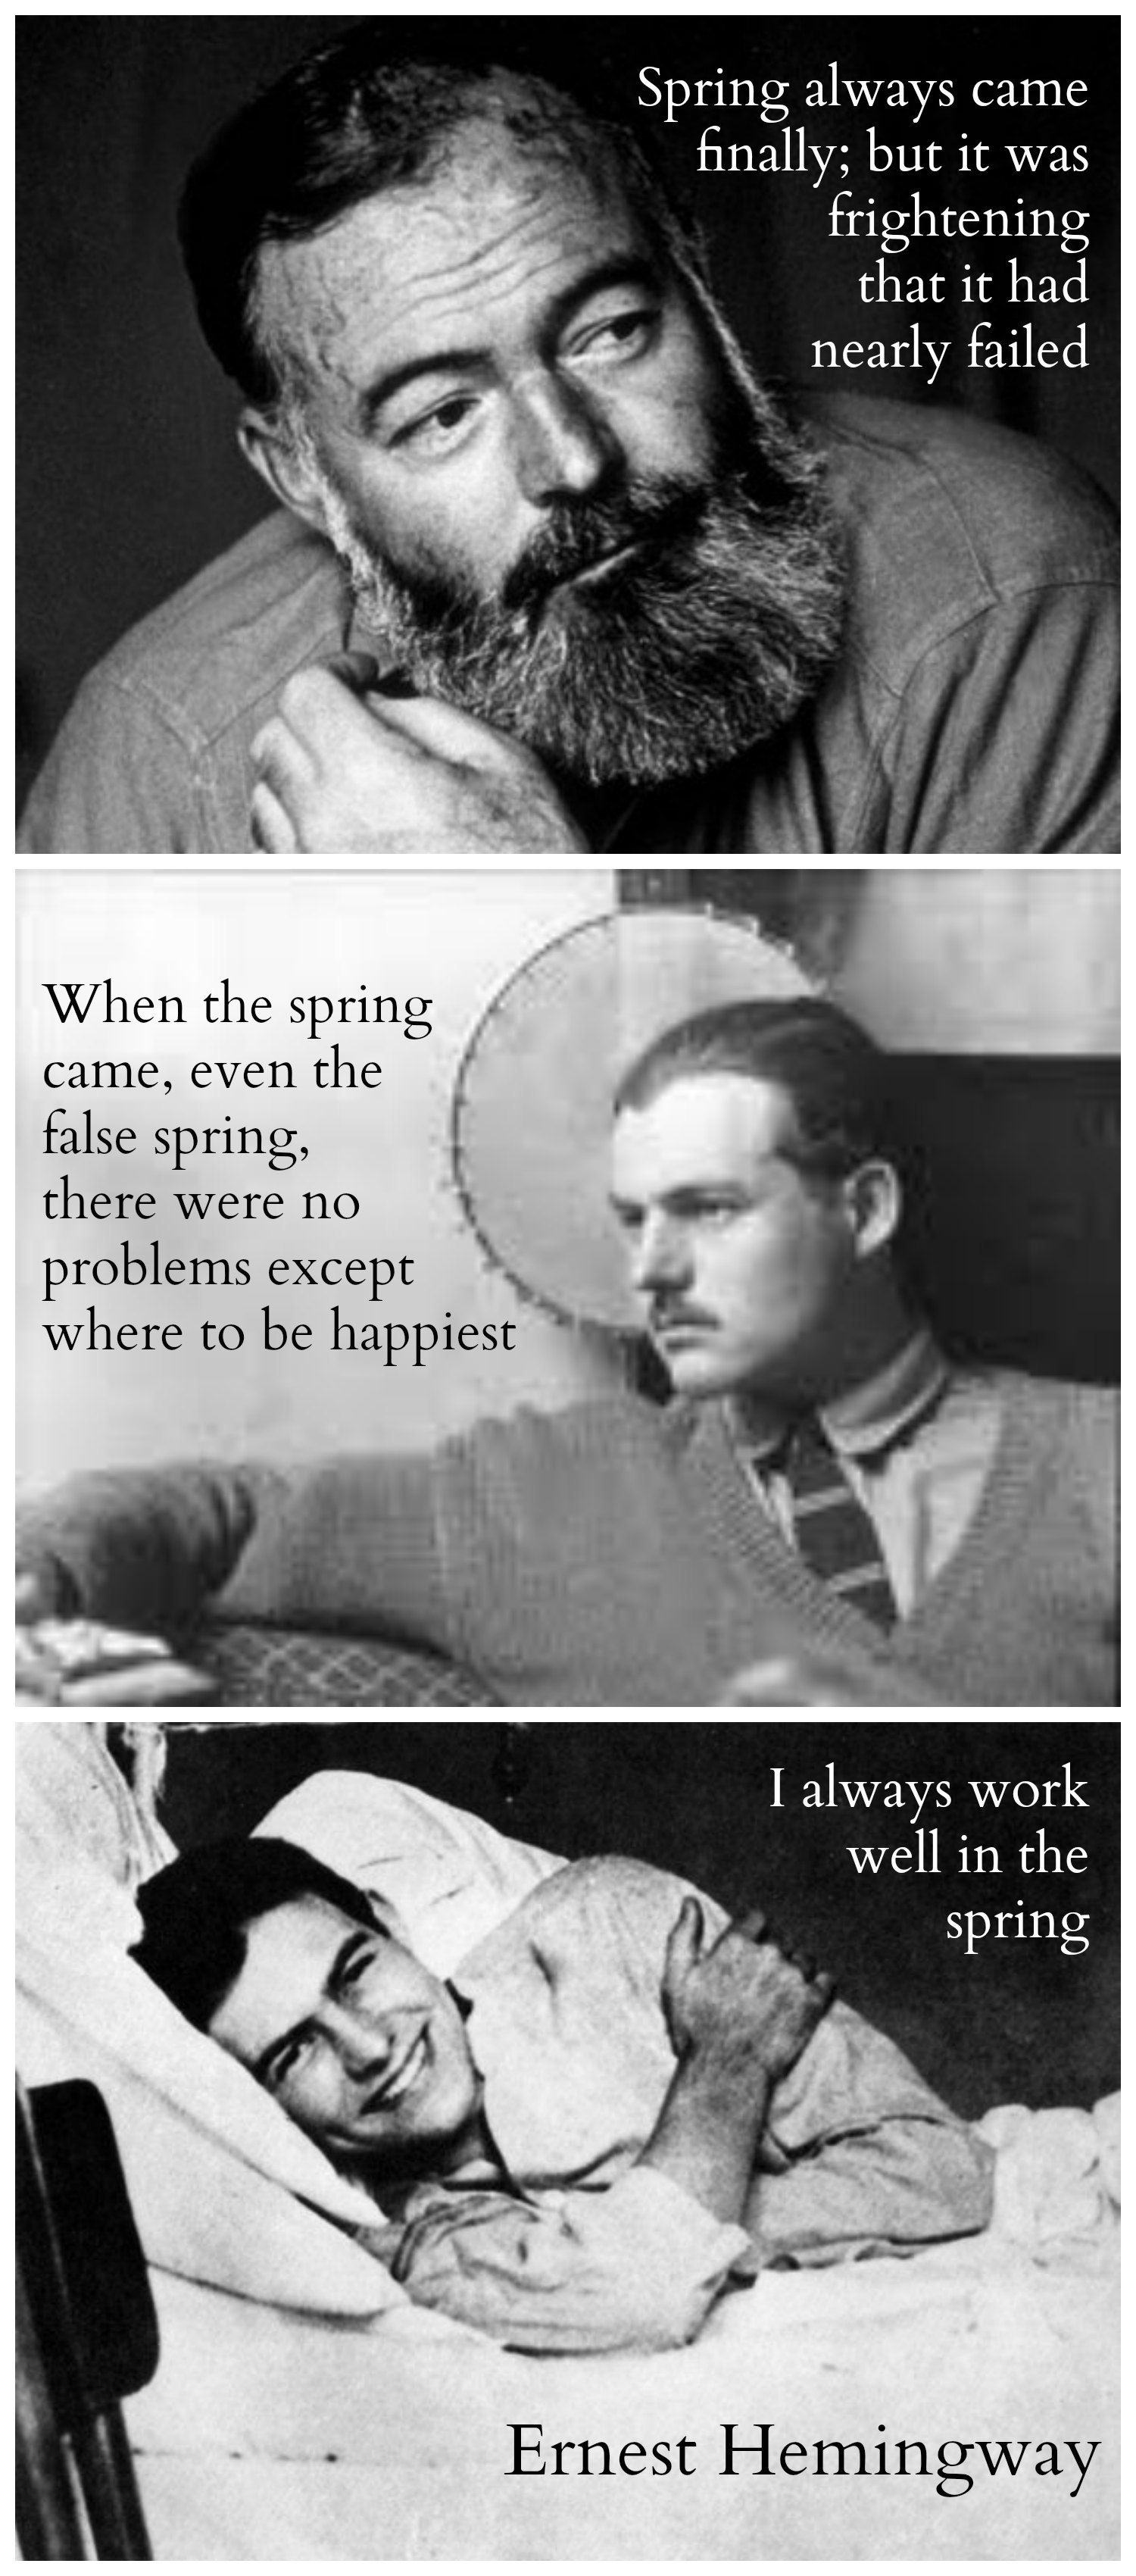 Ernest Hemingway, Aging and Quotes about Spring